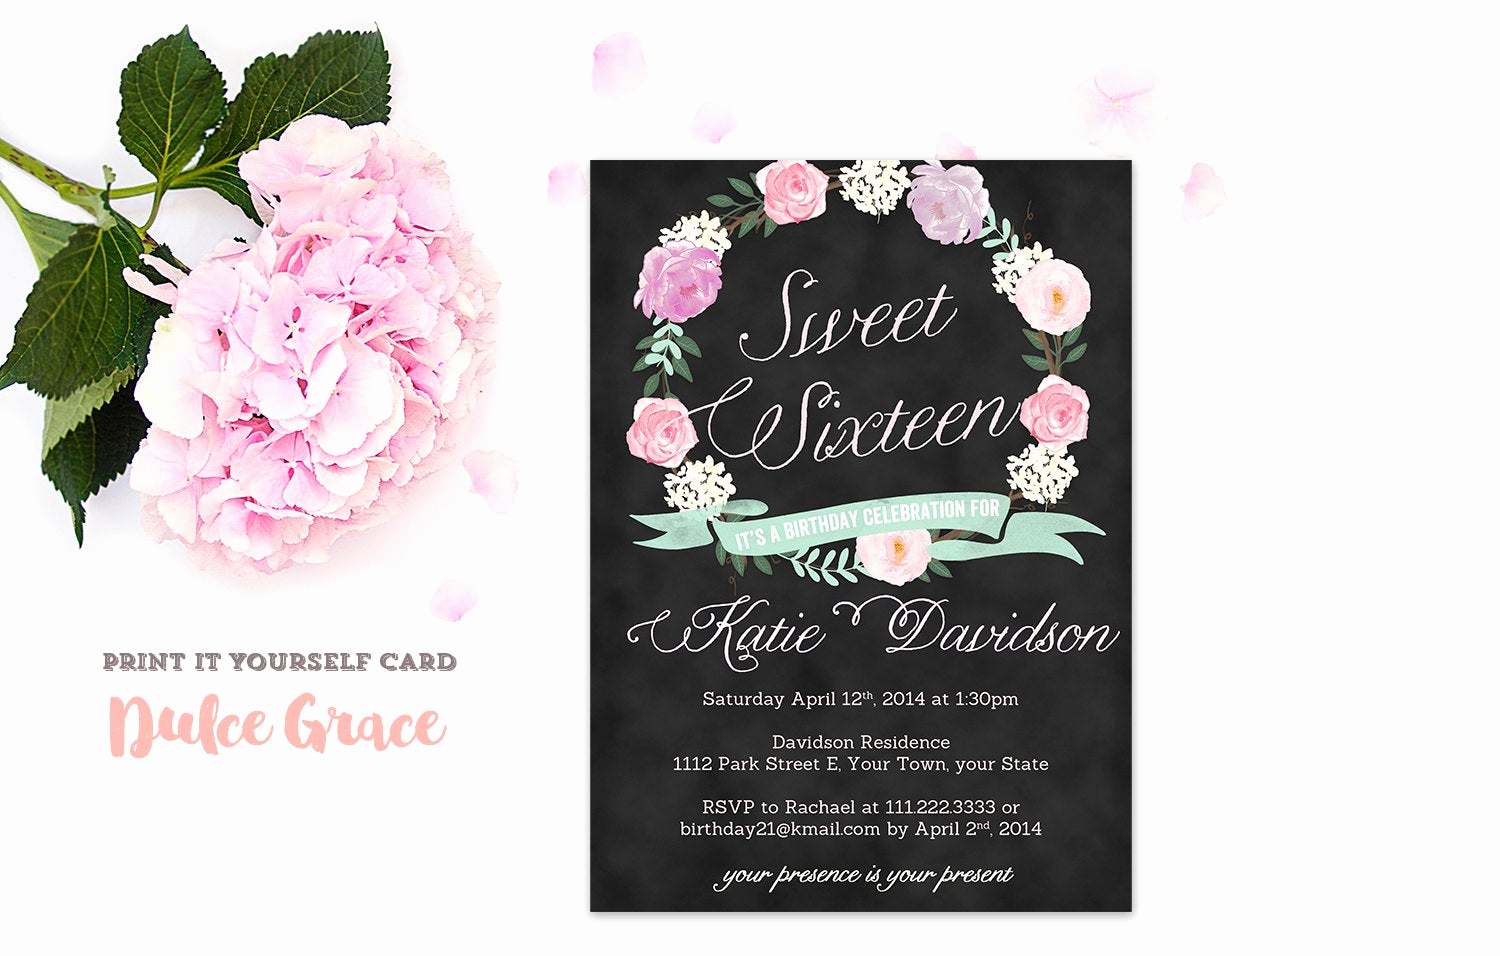 Sweet Sixteen Invitation Template Best Of Sweet Sixteen Invitations Sweet 16 Invitation Printable